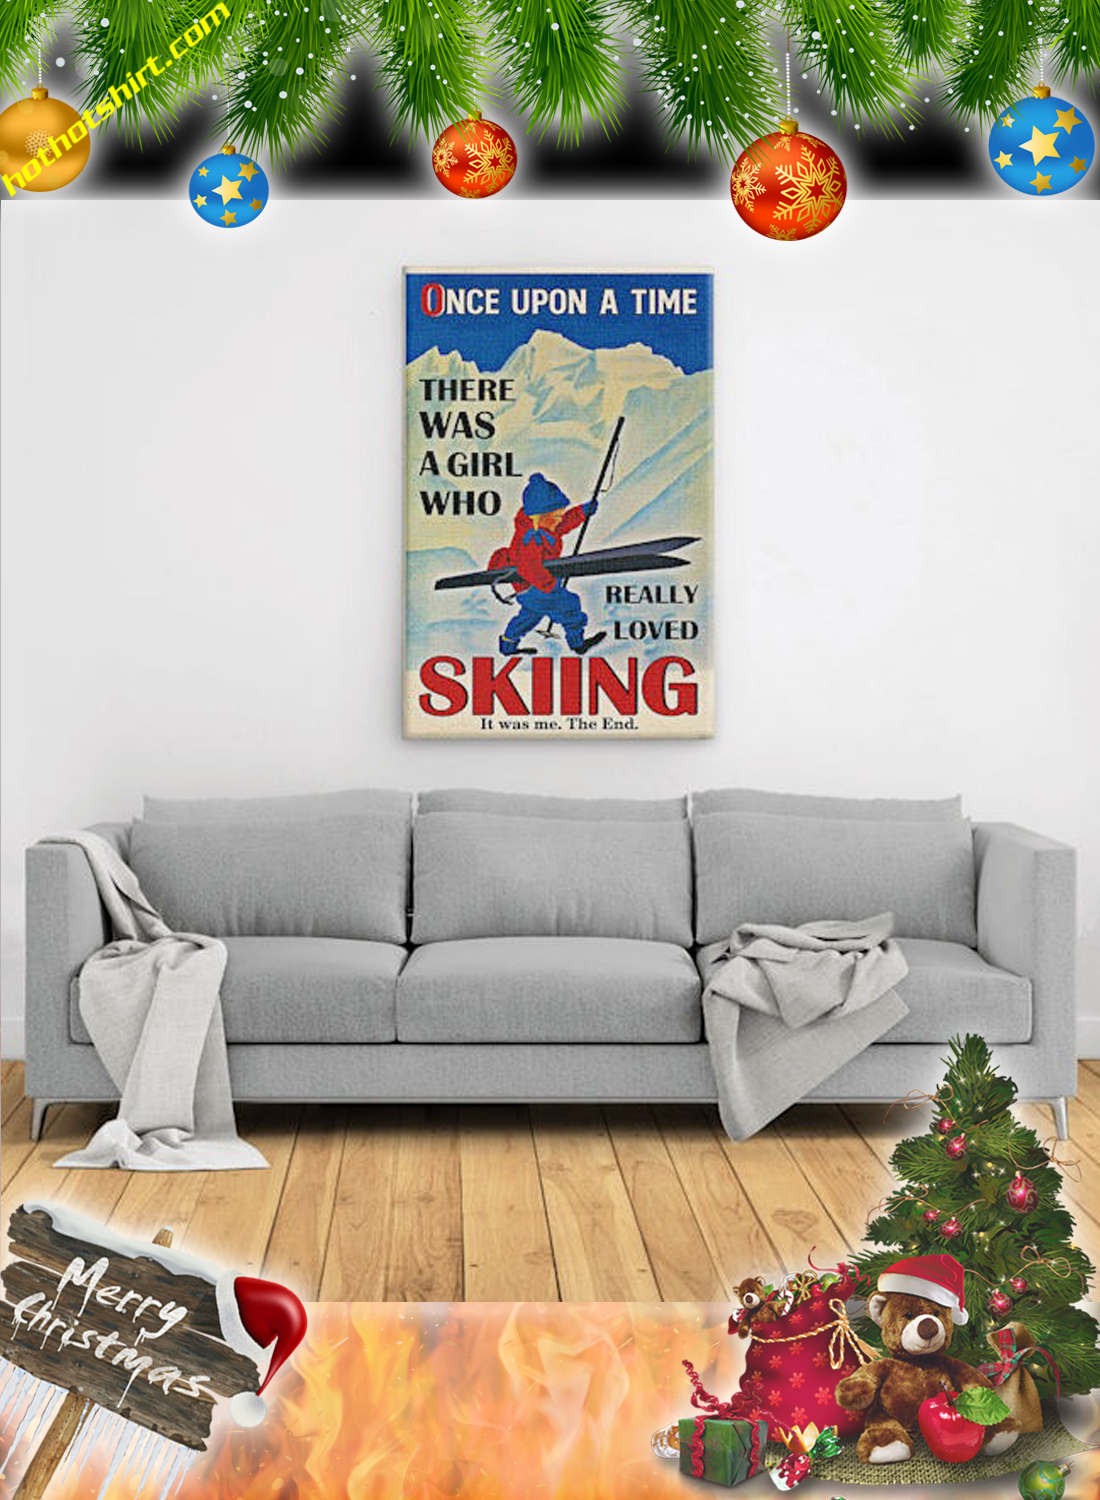 There was a girl who really loved skiing it was me the end canvas print and poster 2